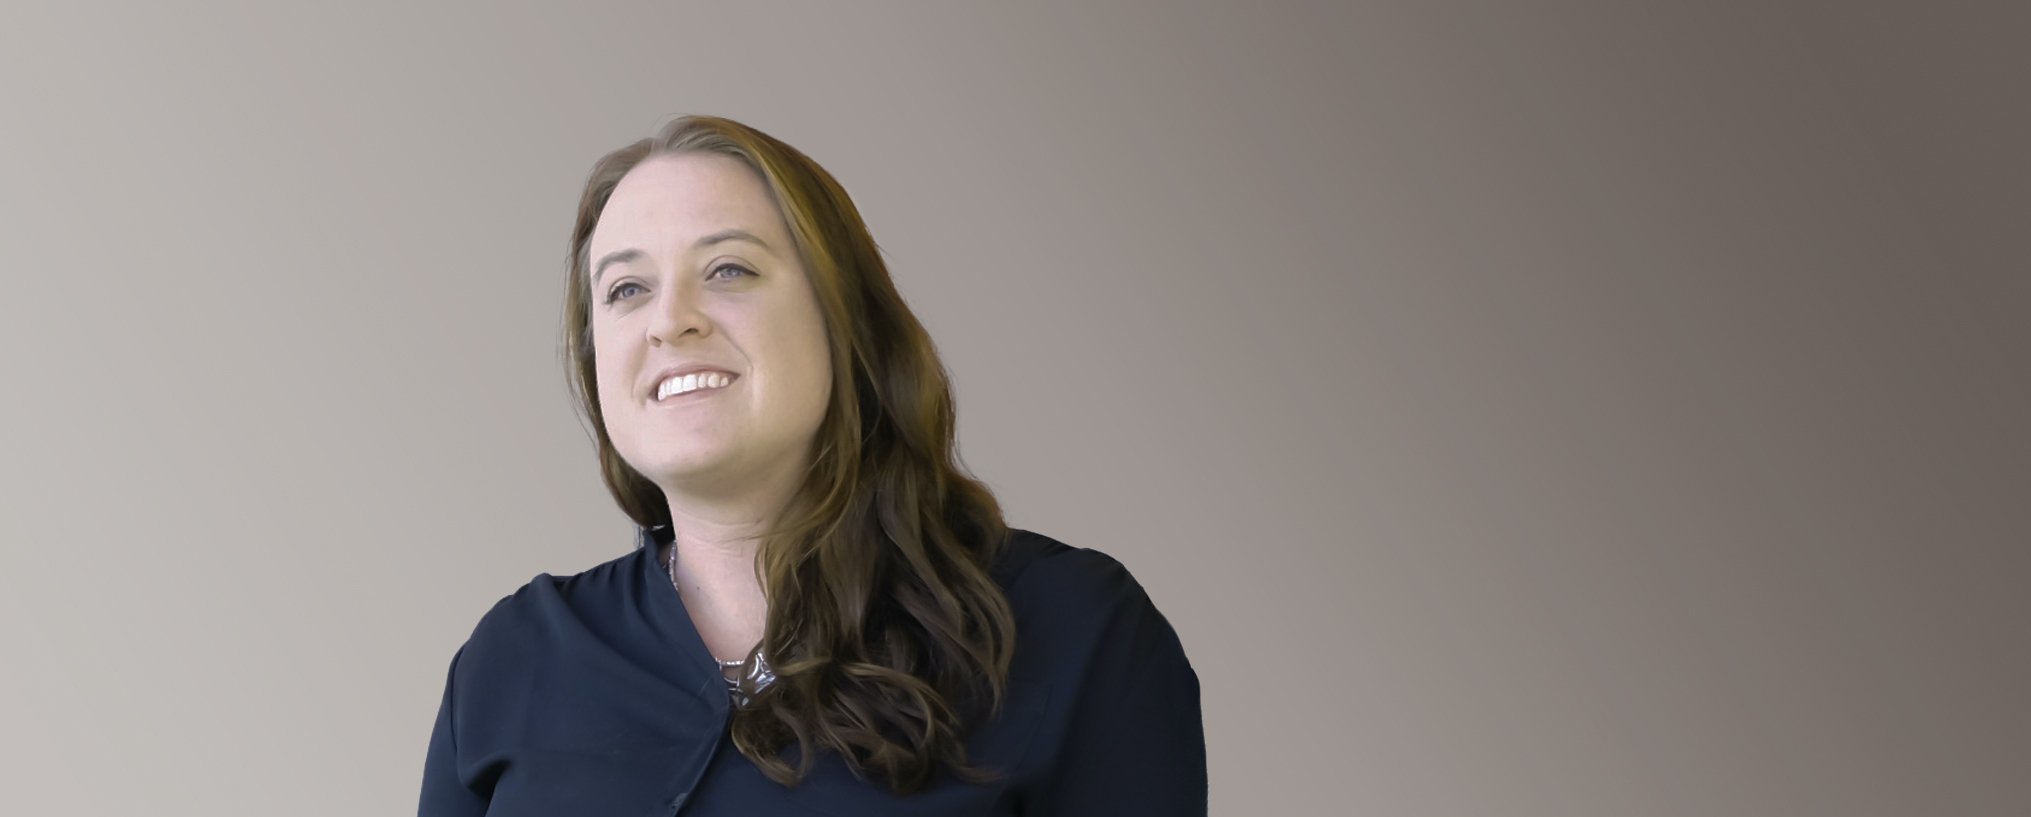 Ashley Bright has been promoted to an associate at HBA Los Angeles.